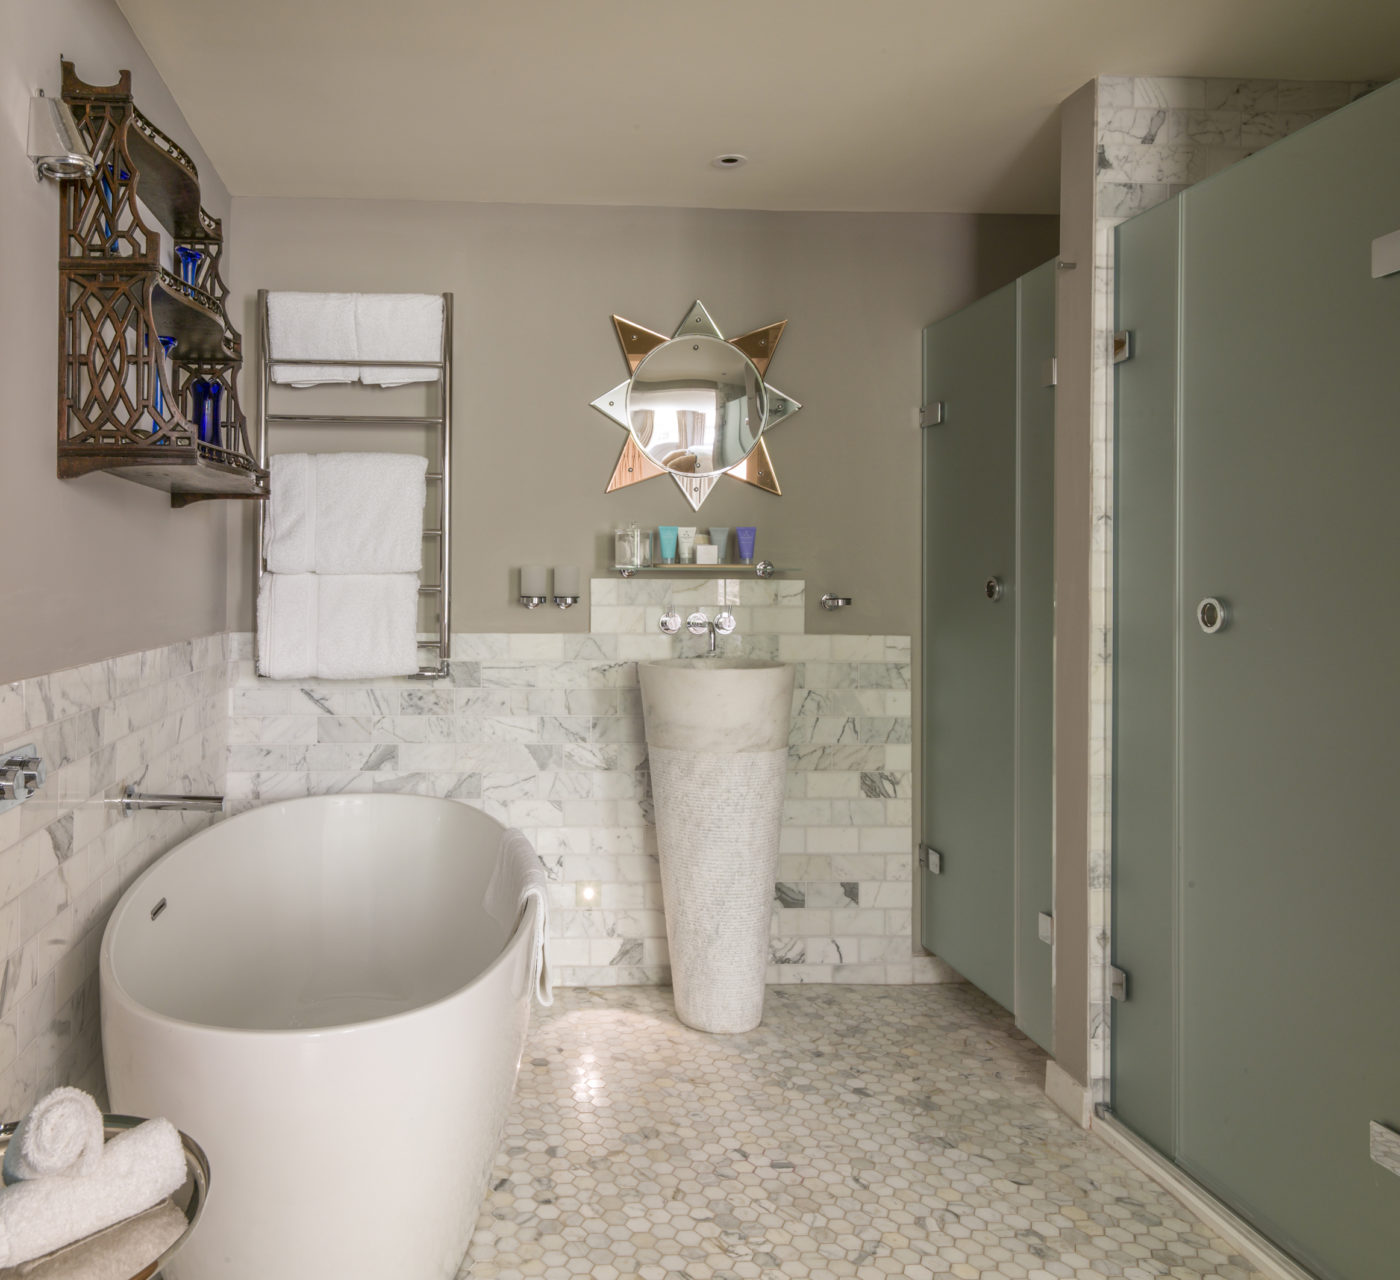 Carrara Honed & Calacatta Honed Splitface Apollo Basin Tiles